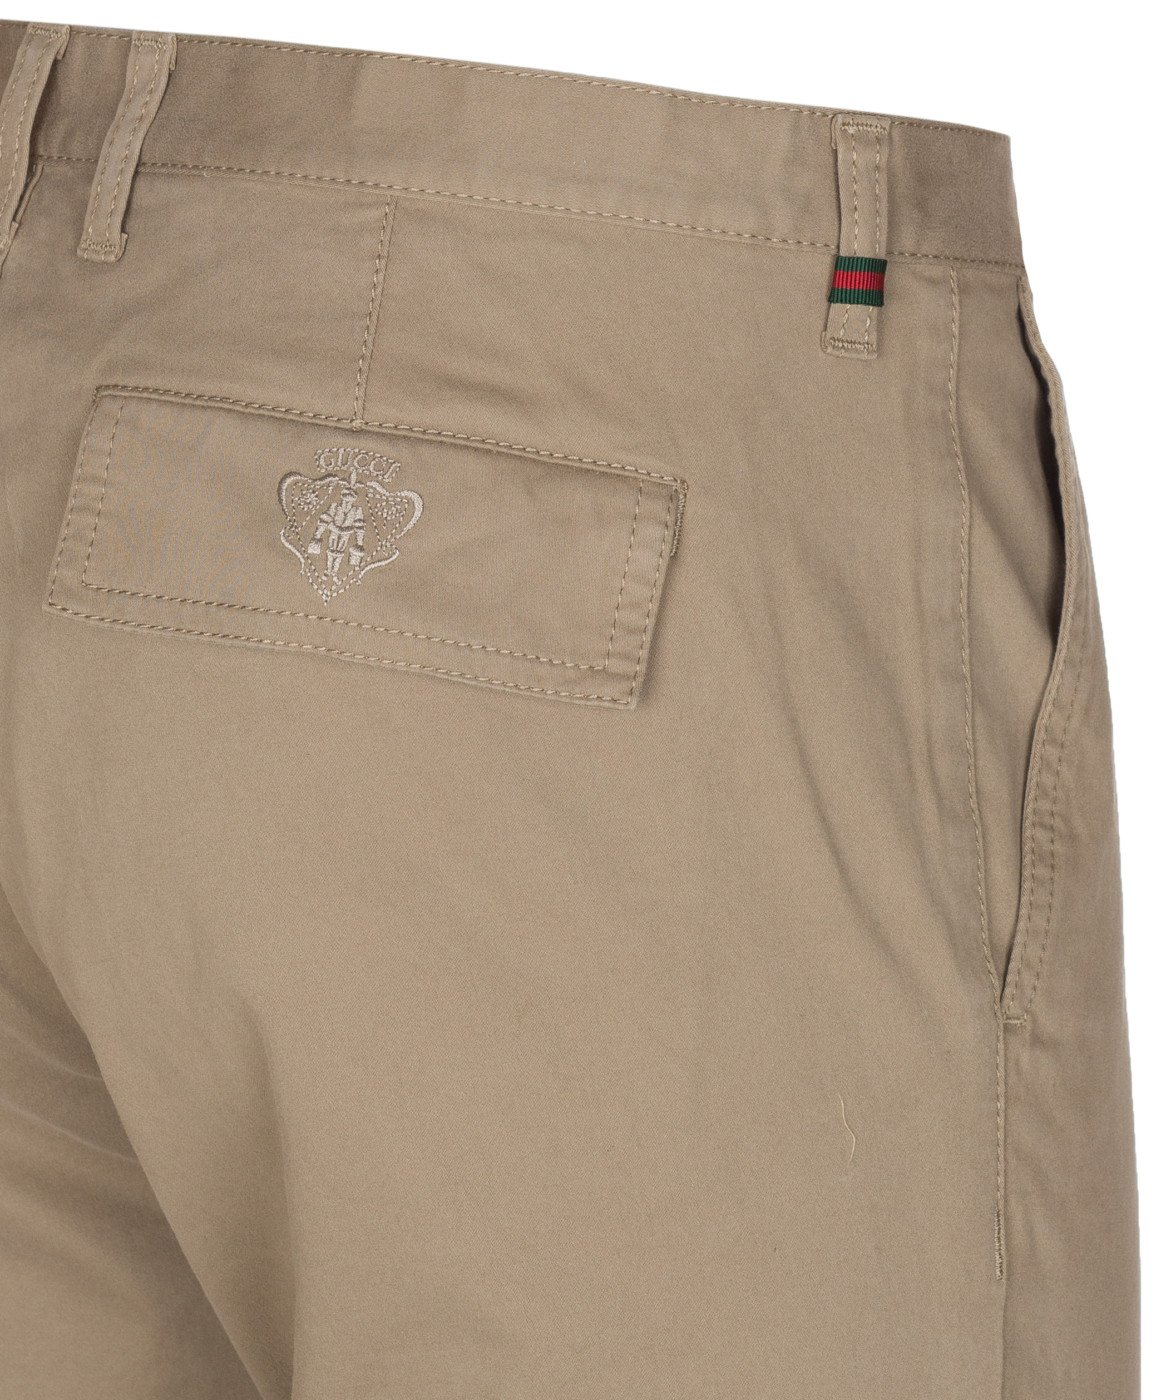 Gucci Men's Softened Stretch Cotton Short Chino Casual Pants, Beige, 28 by Gucci (Image #7)